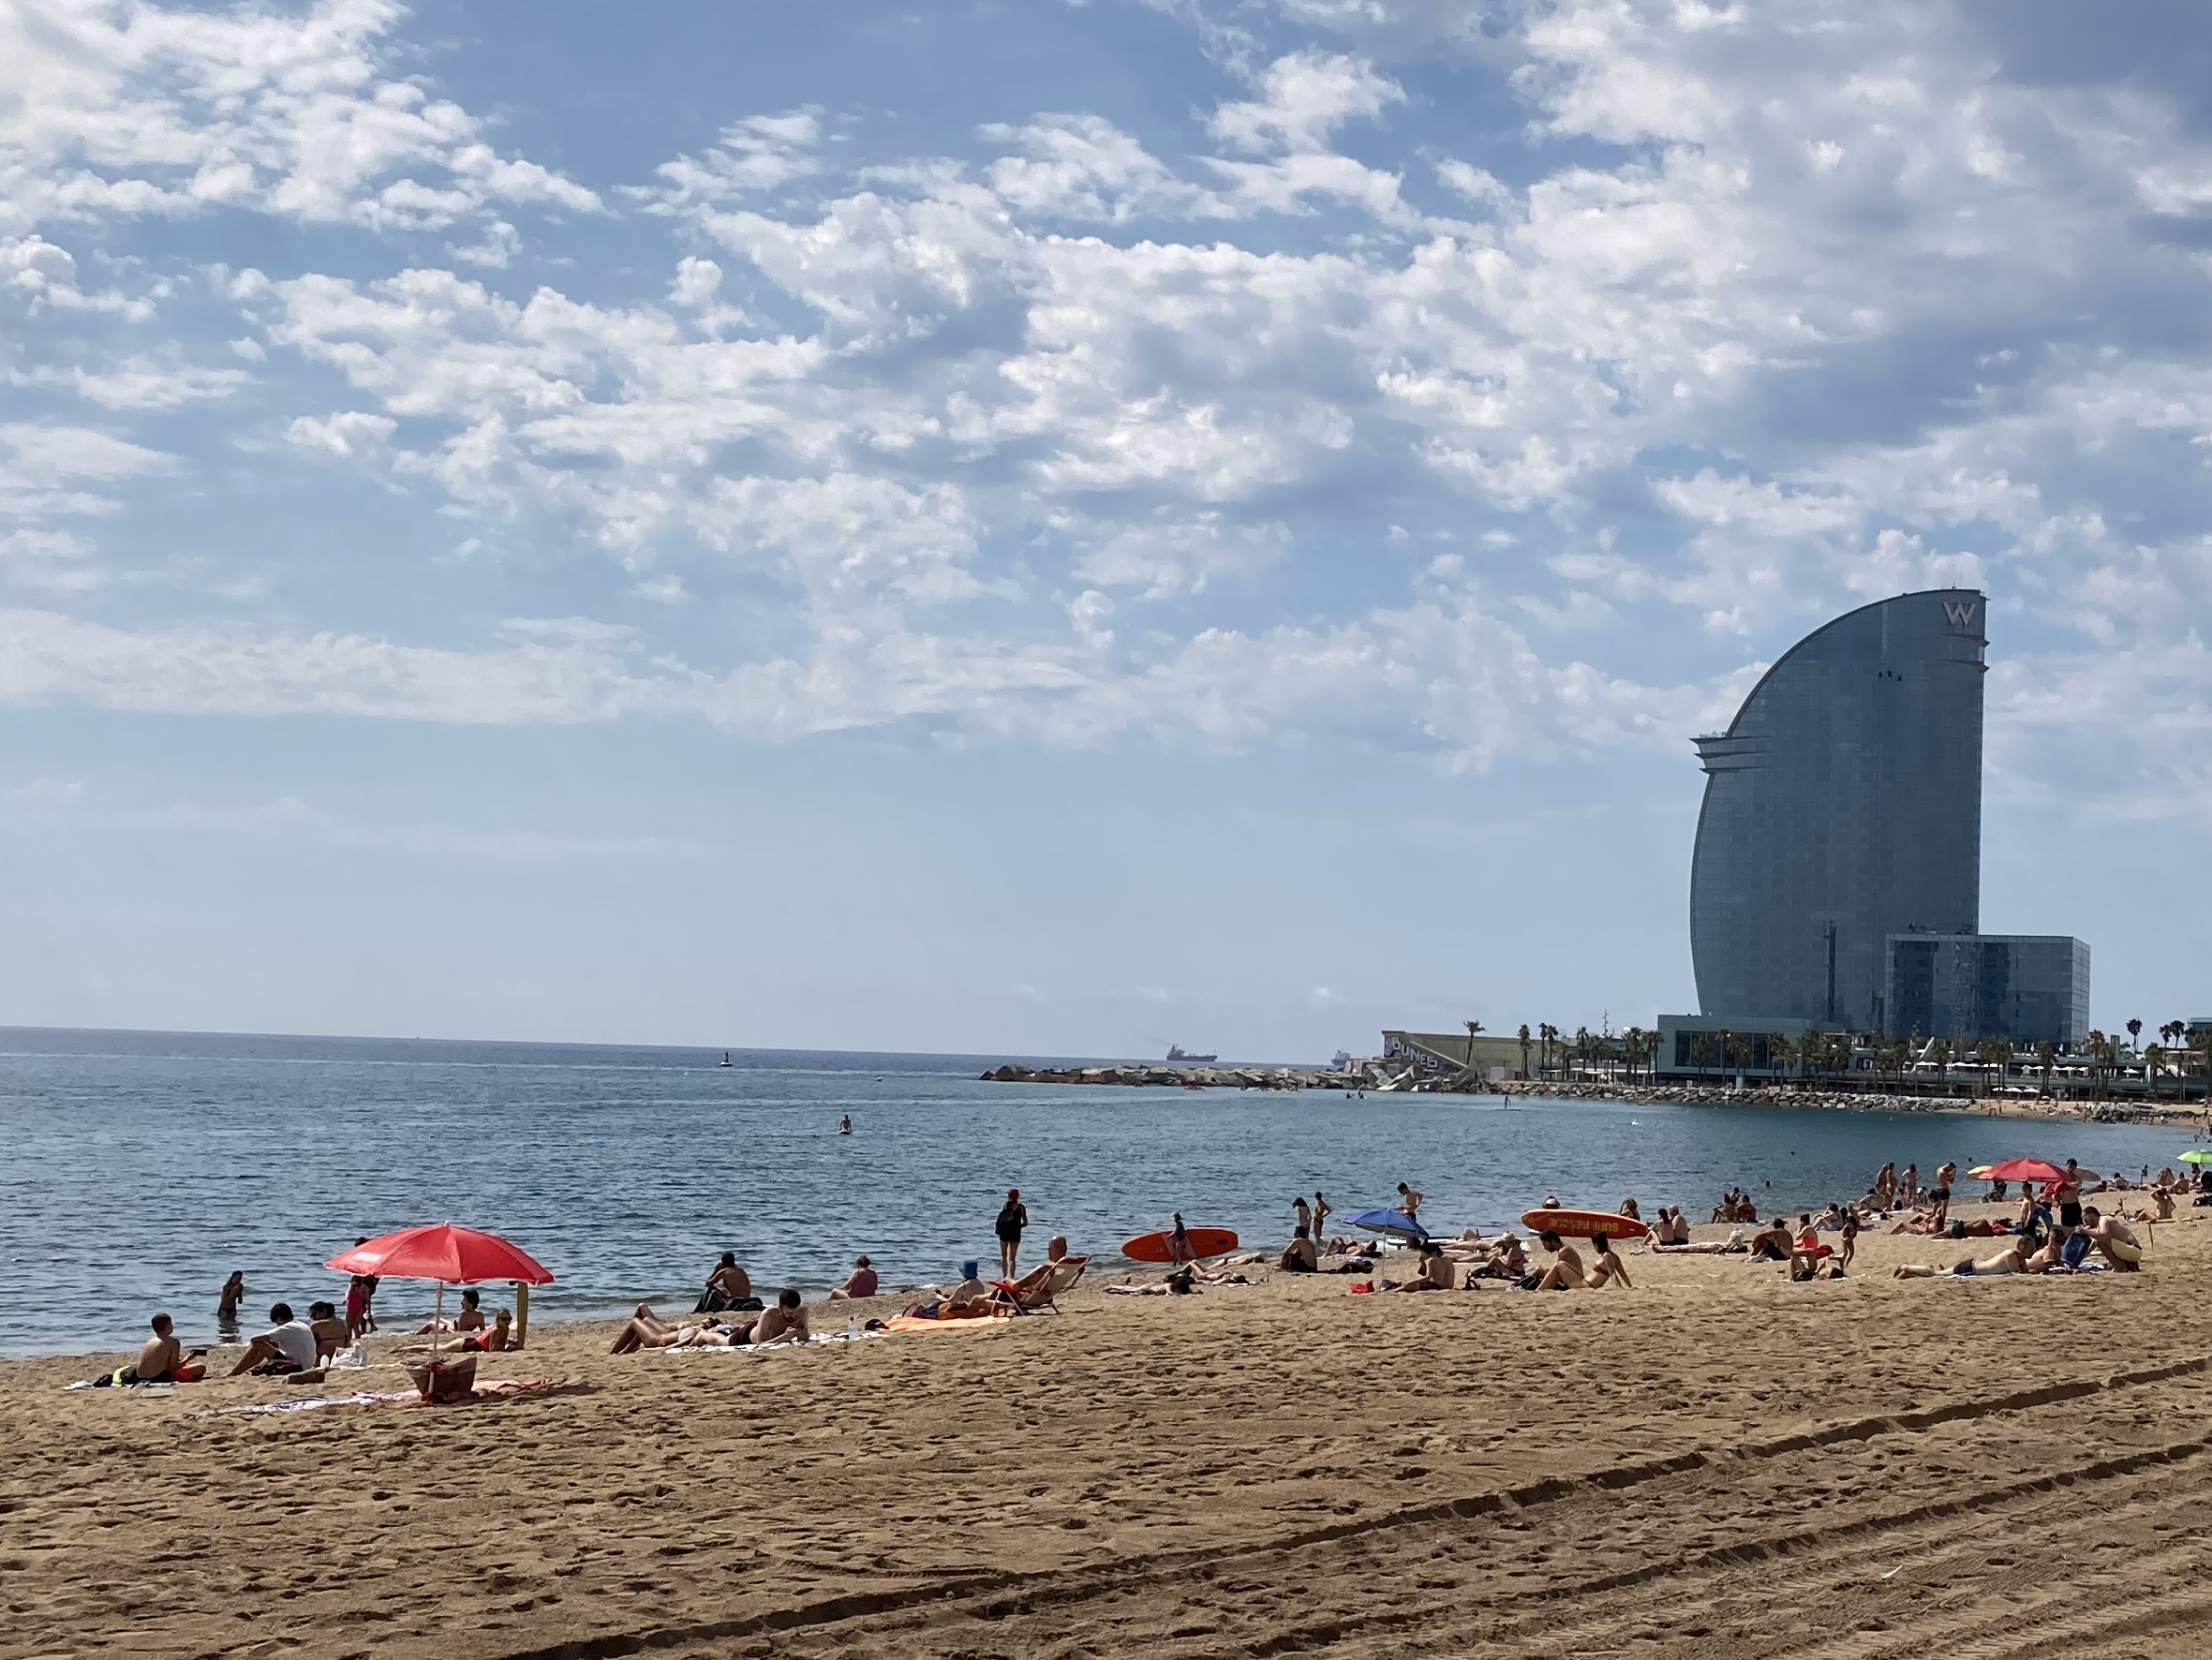 The local government has limited access to Barceloneta beach to prevent overcrowding and ensure safe distancing.